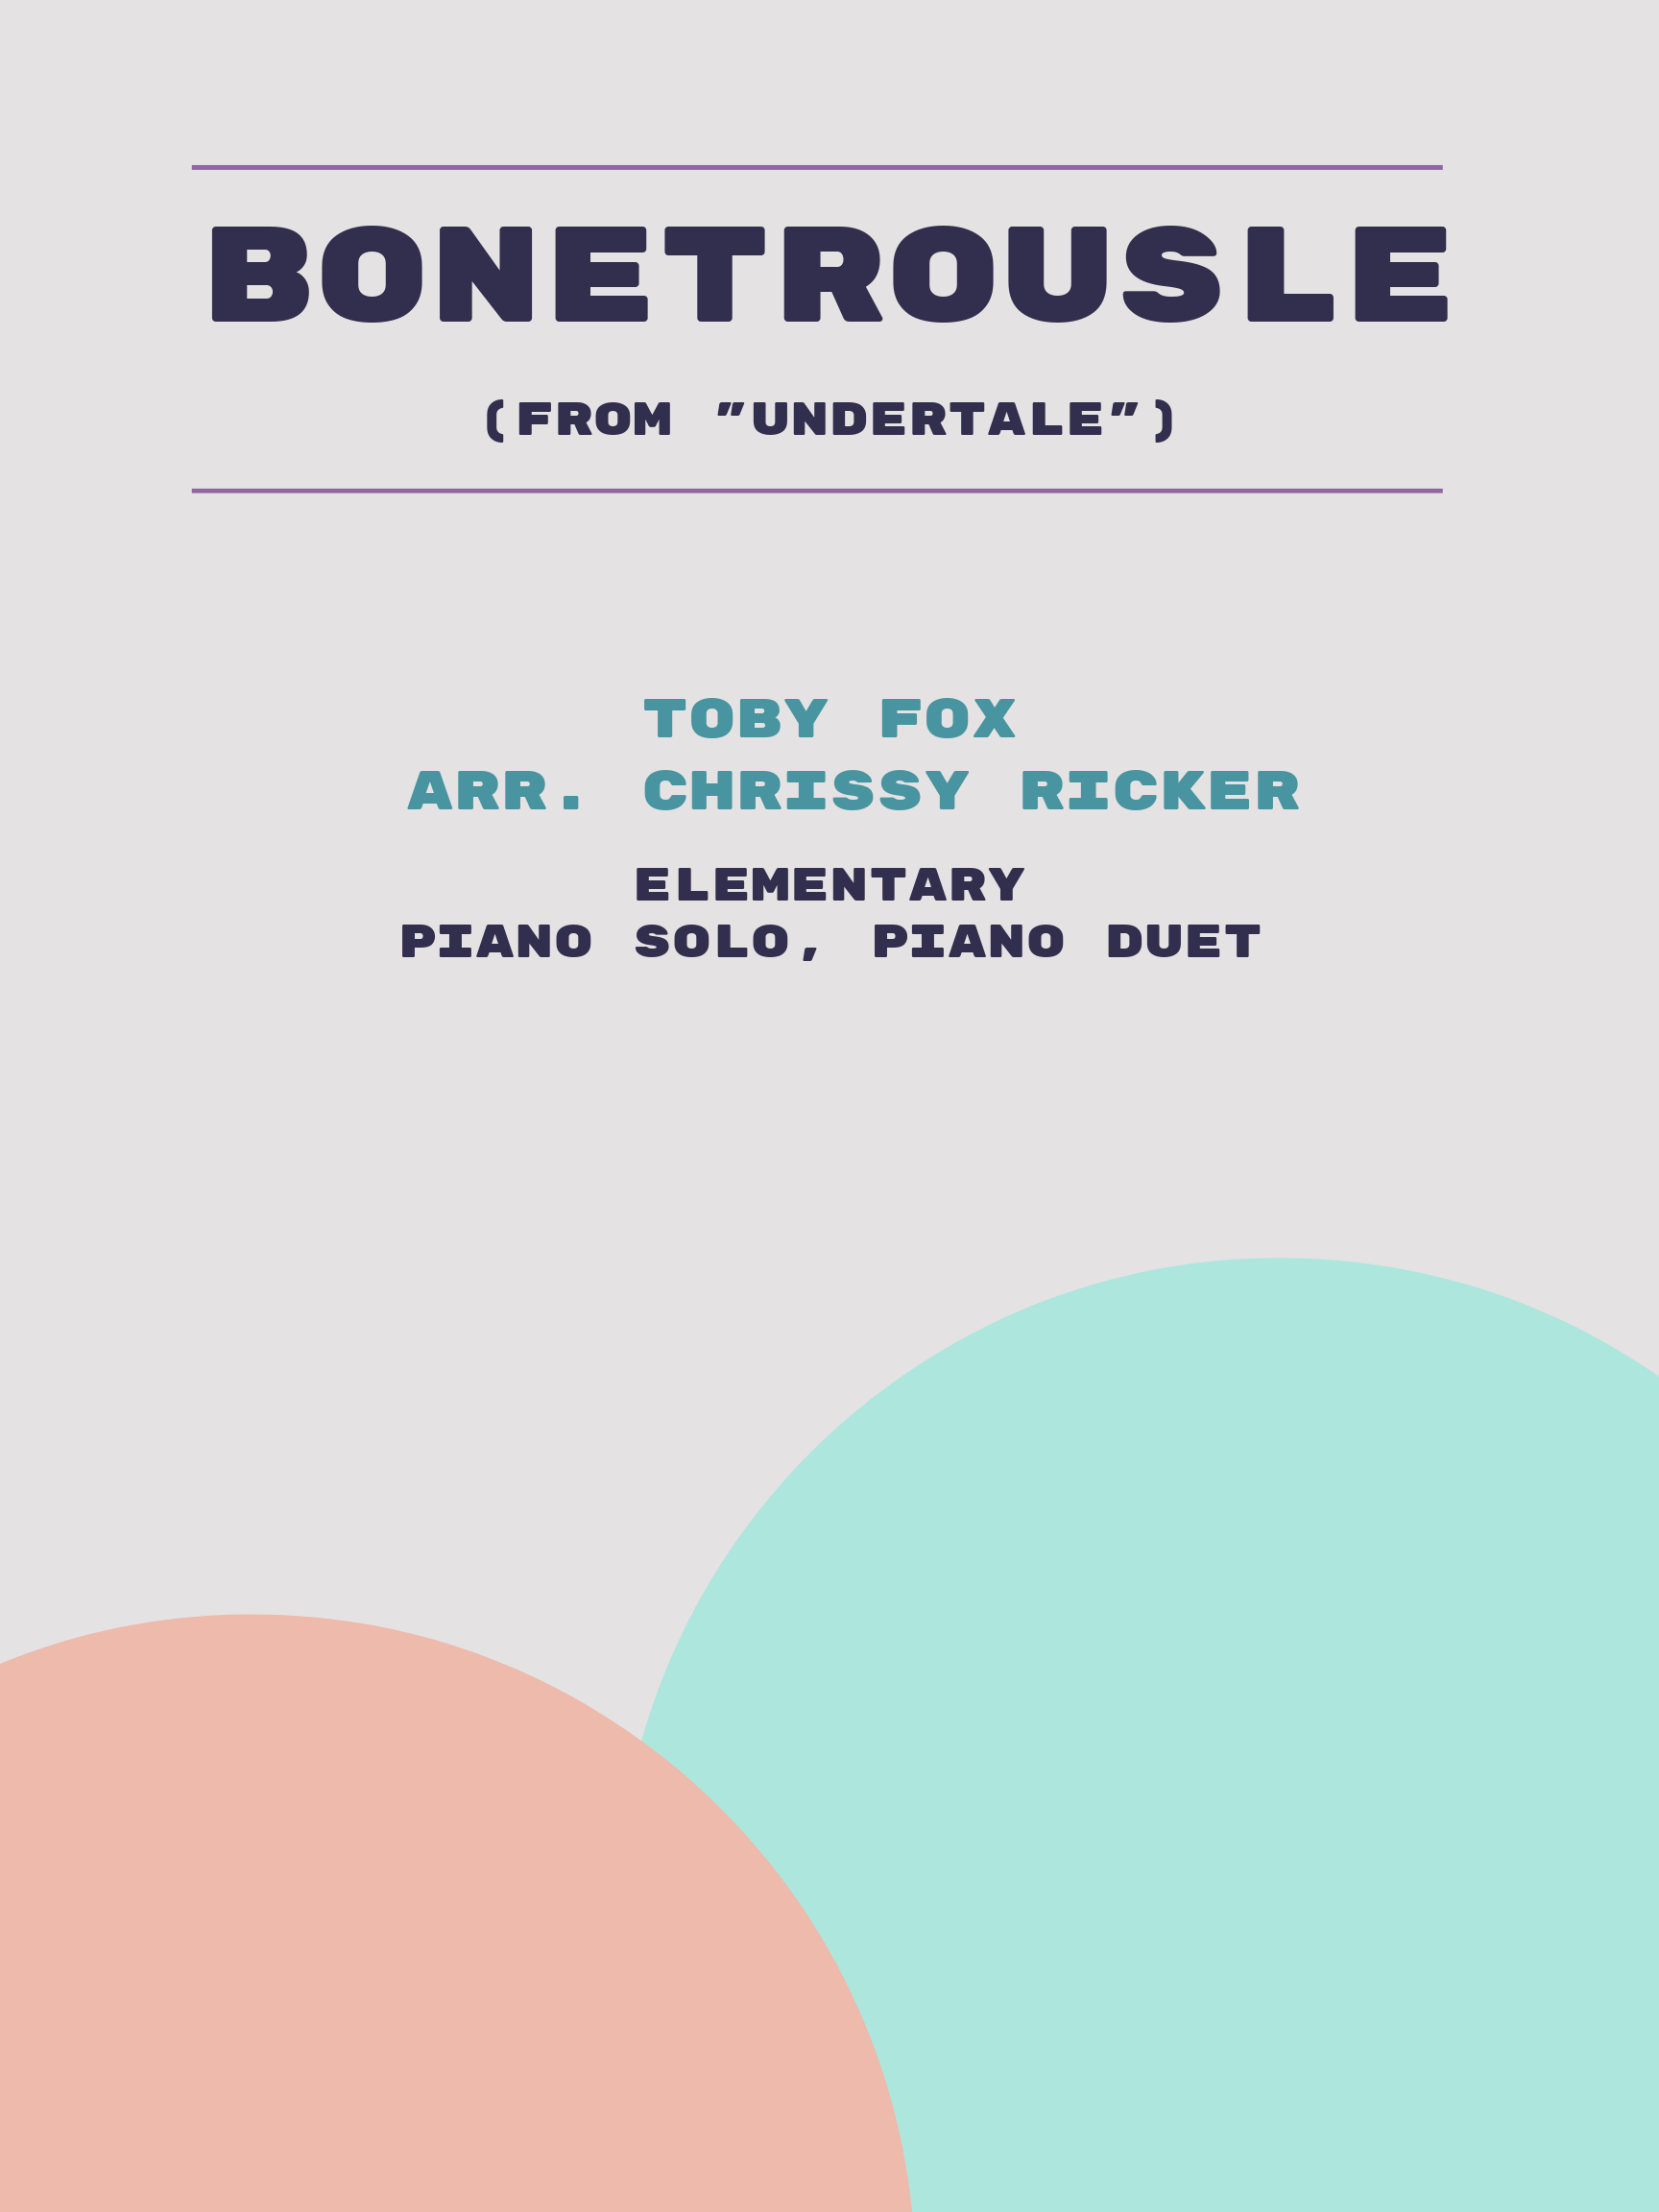 Bonetrousle by Toby Fox